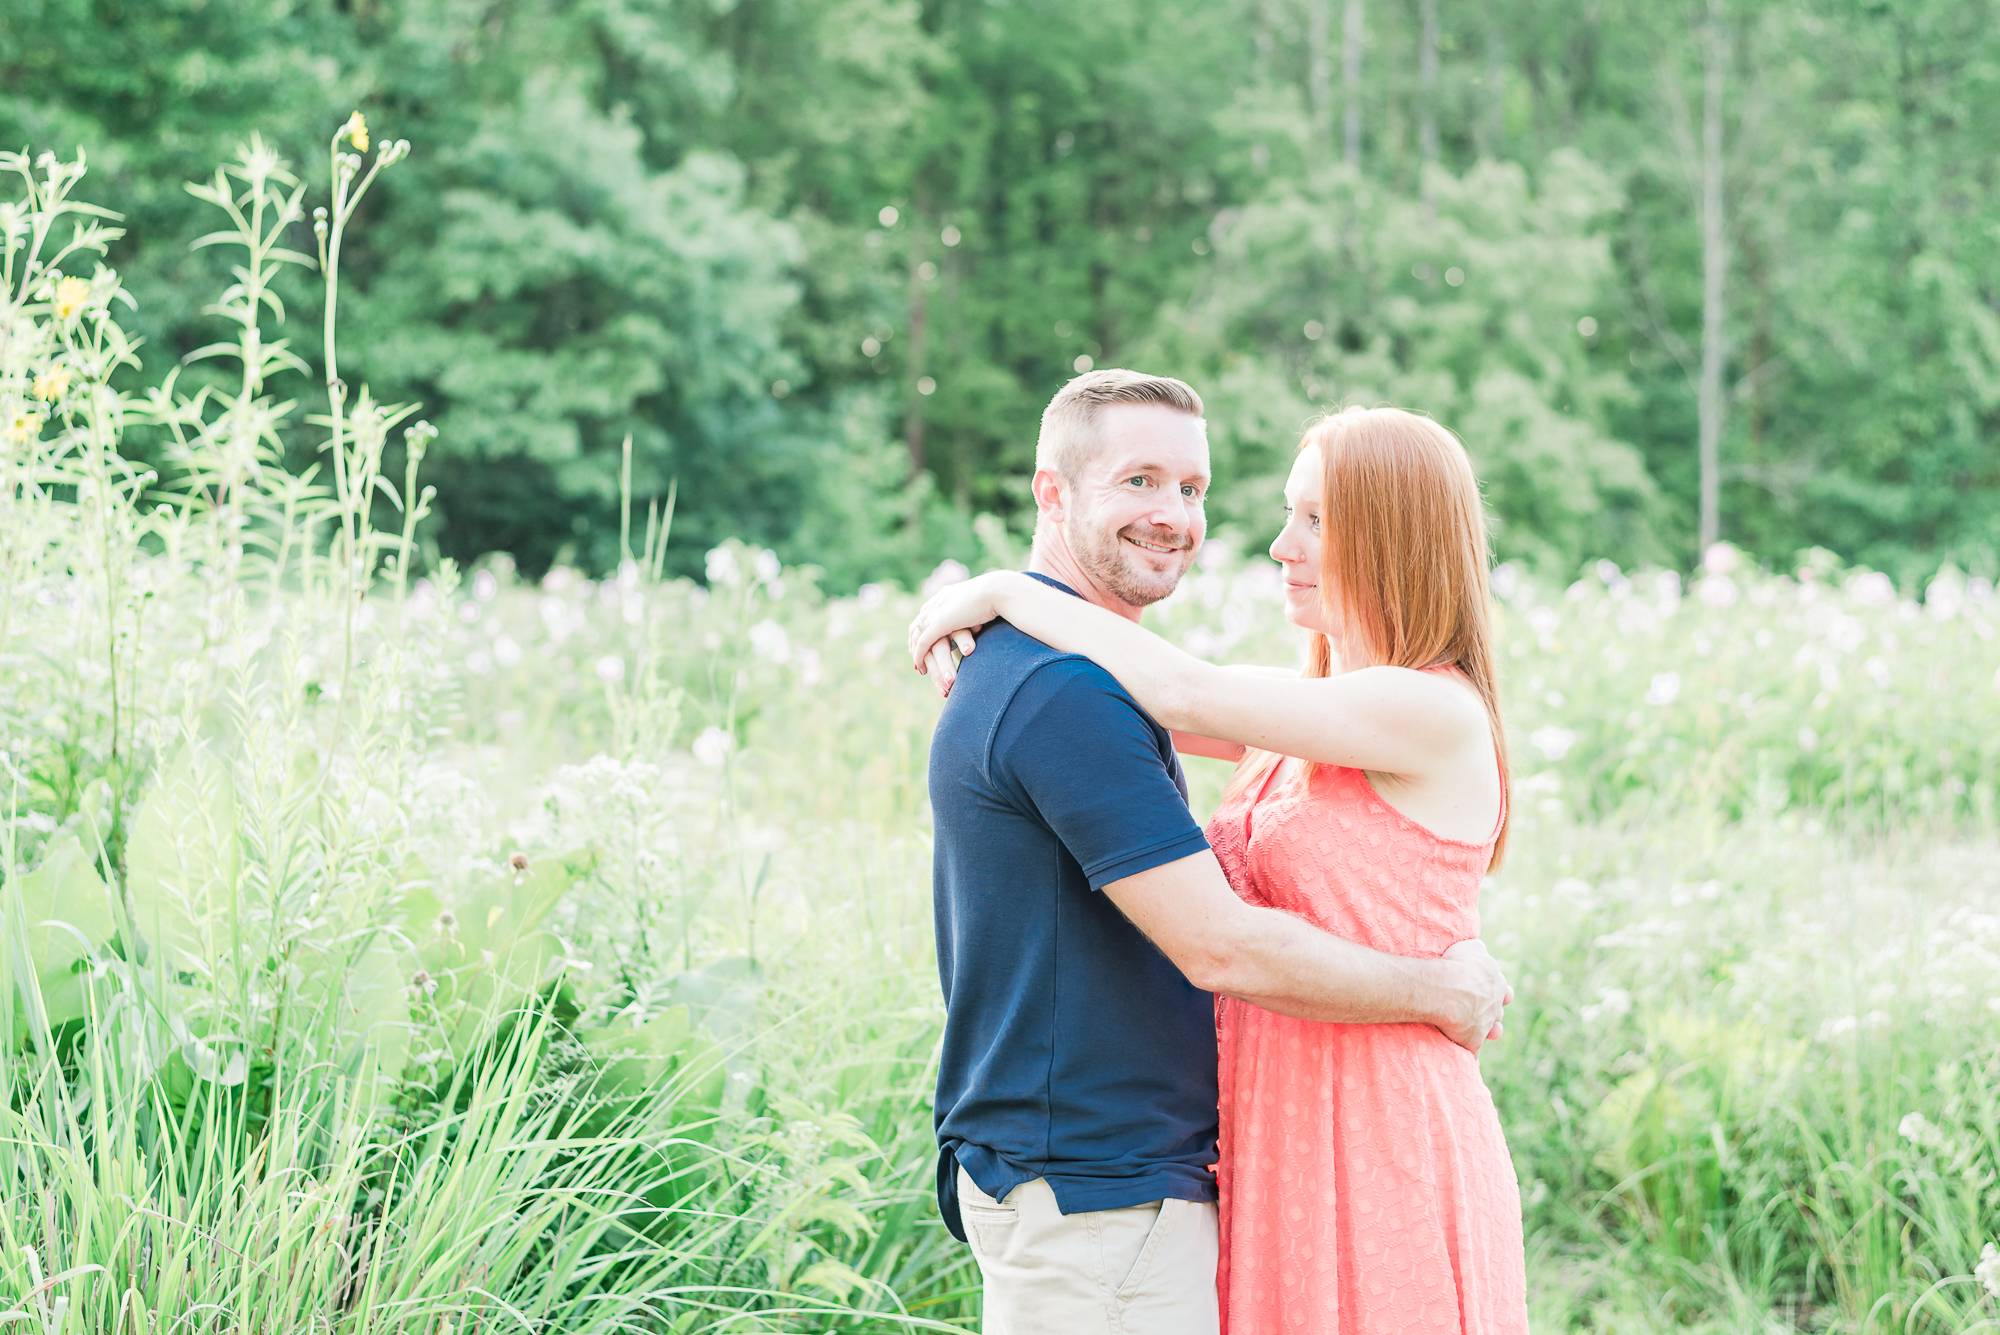 AB Favorites_Katy+Brian_Engagement Session_Brecksville Reservation_Brecksville_Ohio-14.jpg